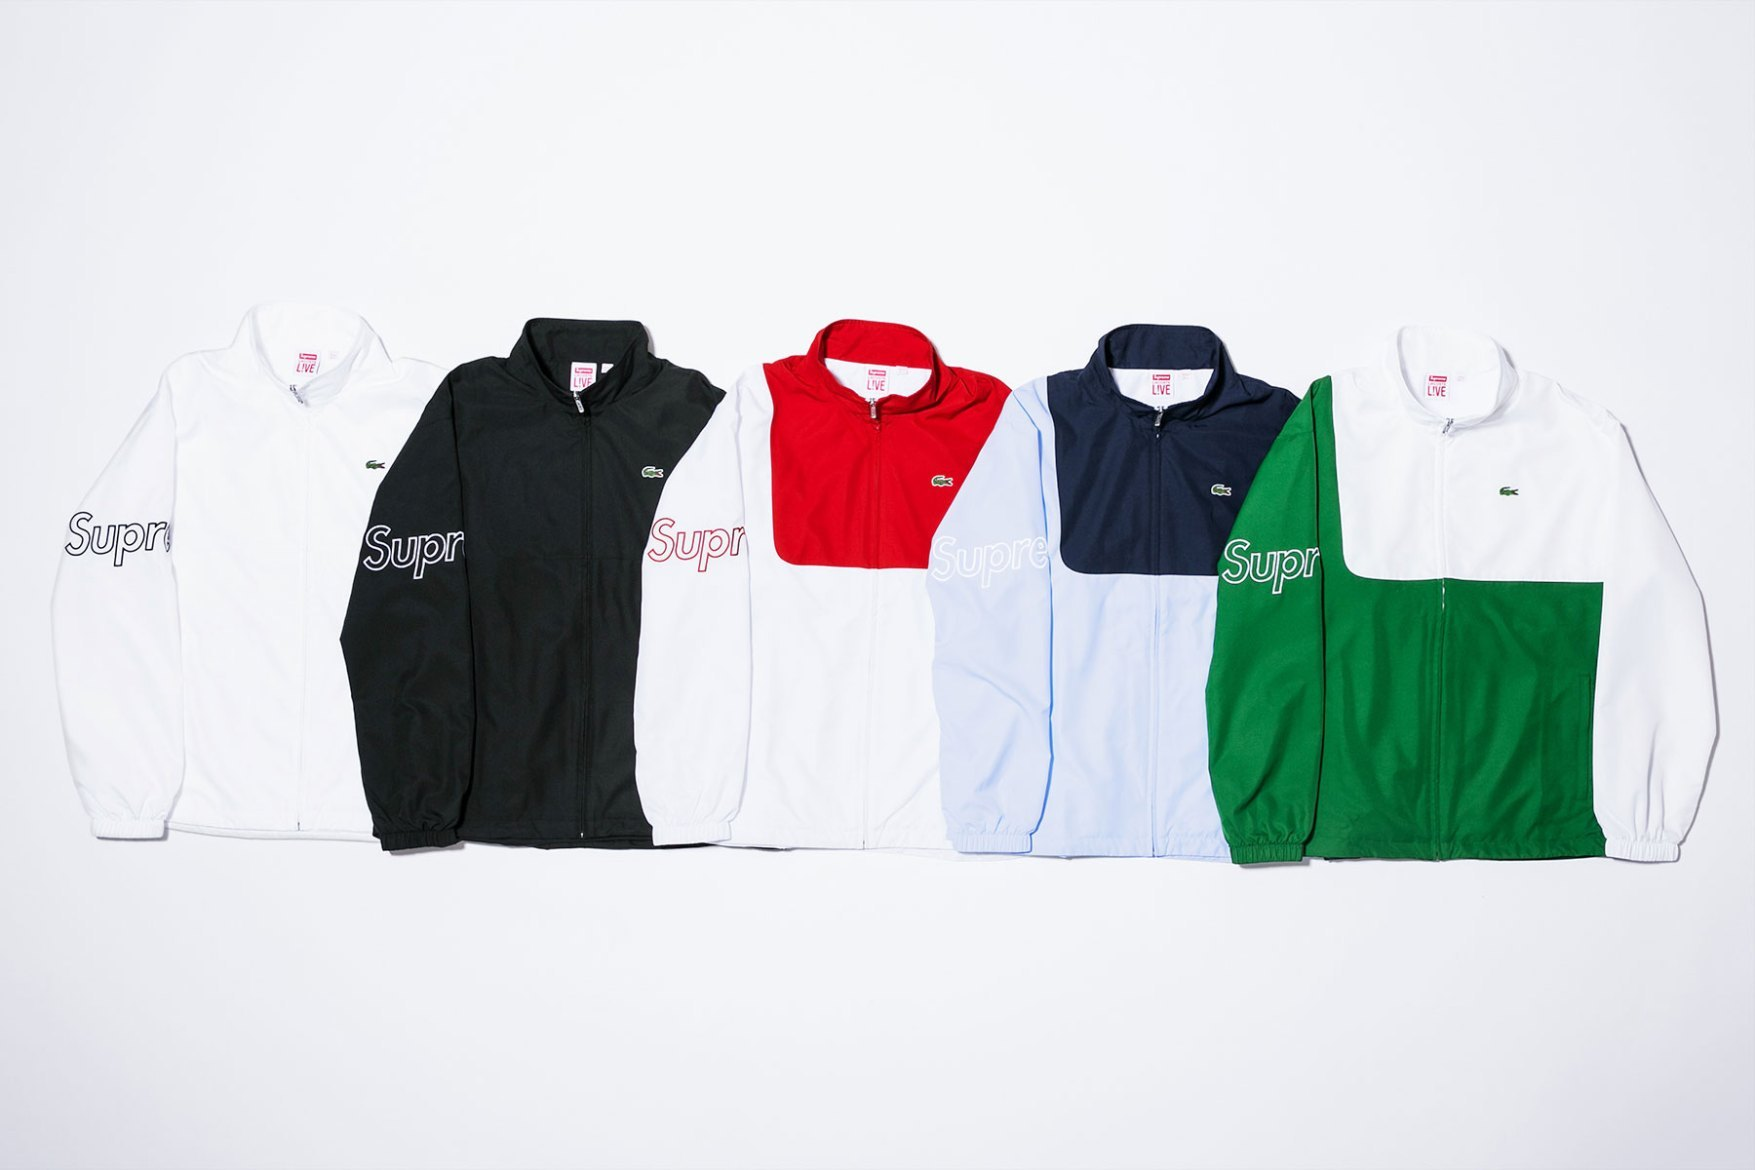 lacoste-supreme-jacket-group-2017-spring-summer-7